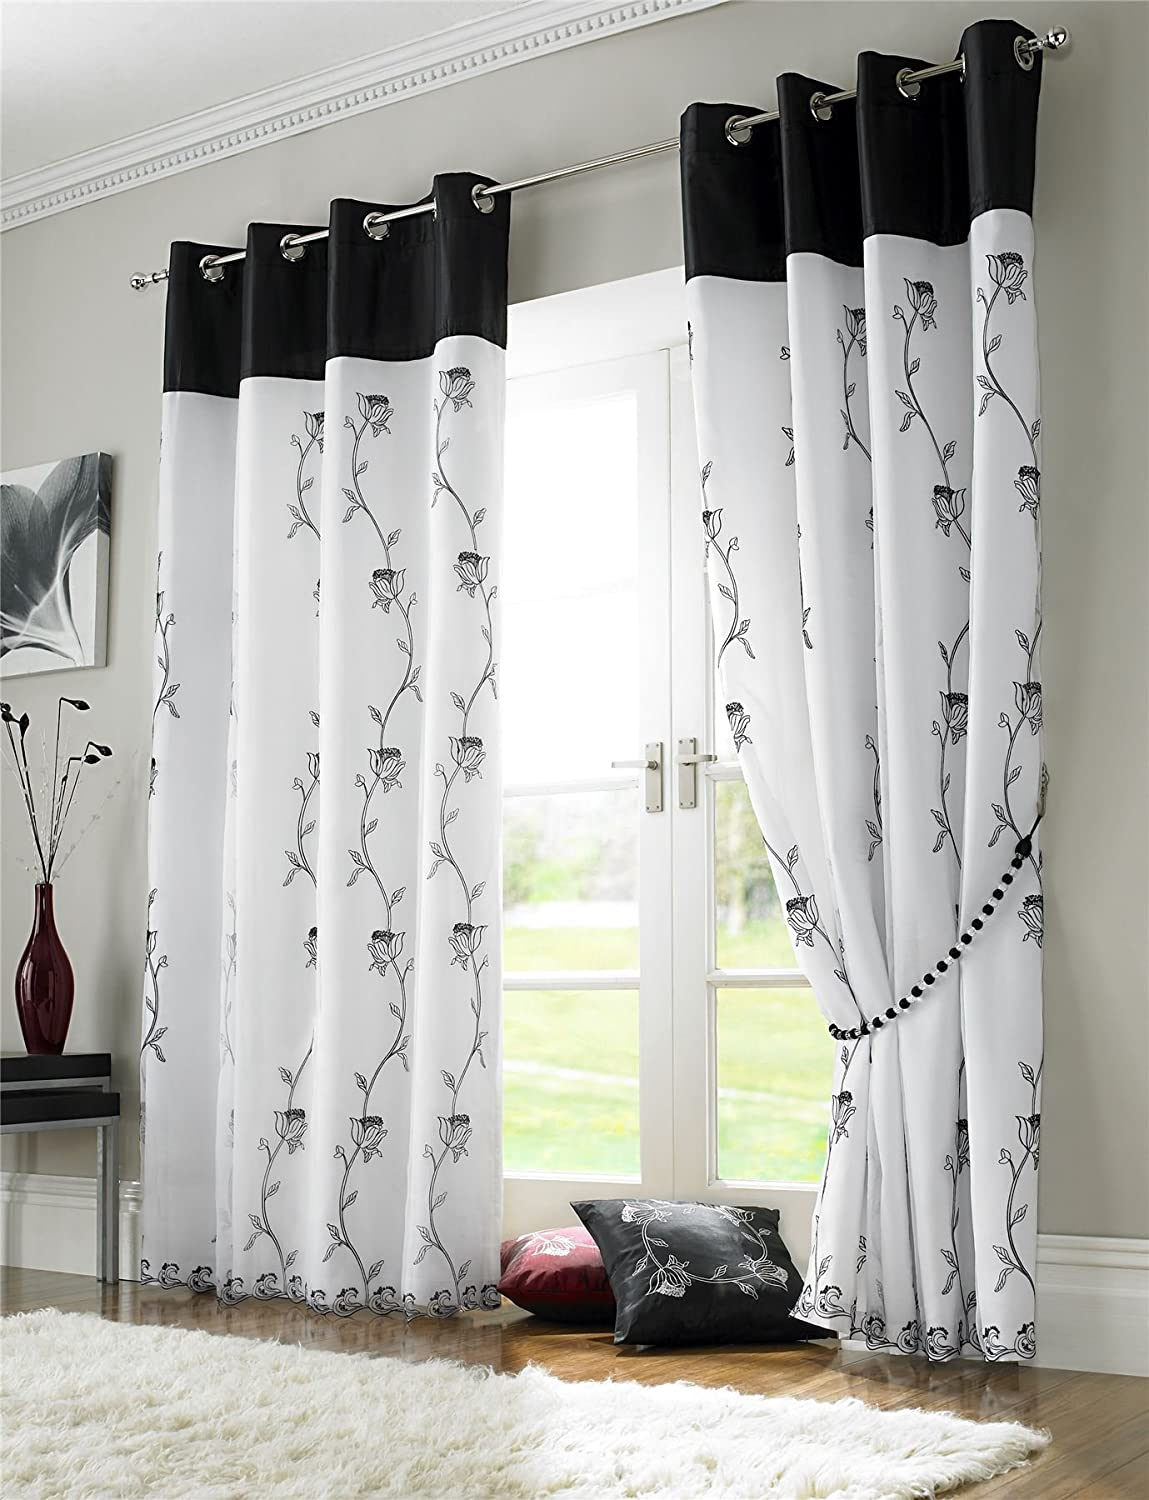 BLACK WHITE FLORAL ROSE FULLY LINED RING TOP VOILE CURTAIN DRAPES